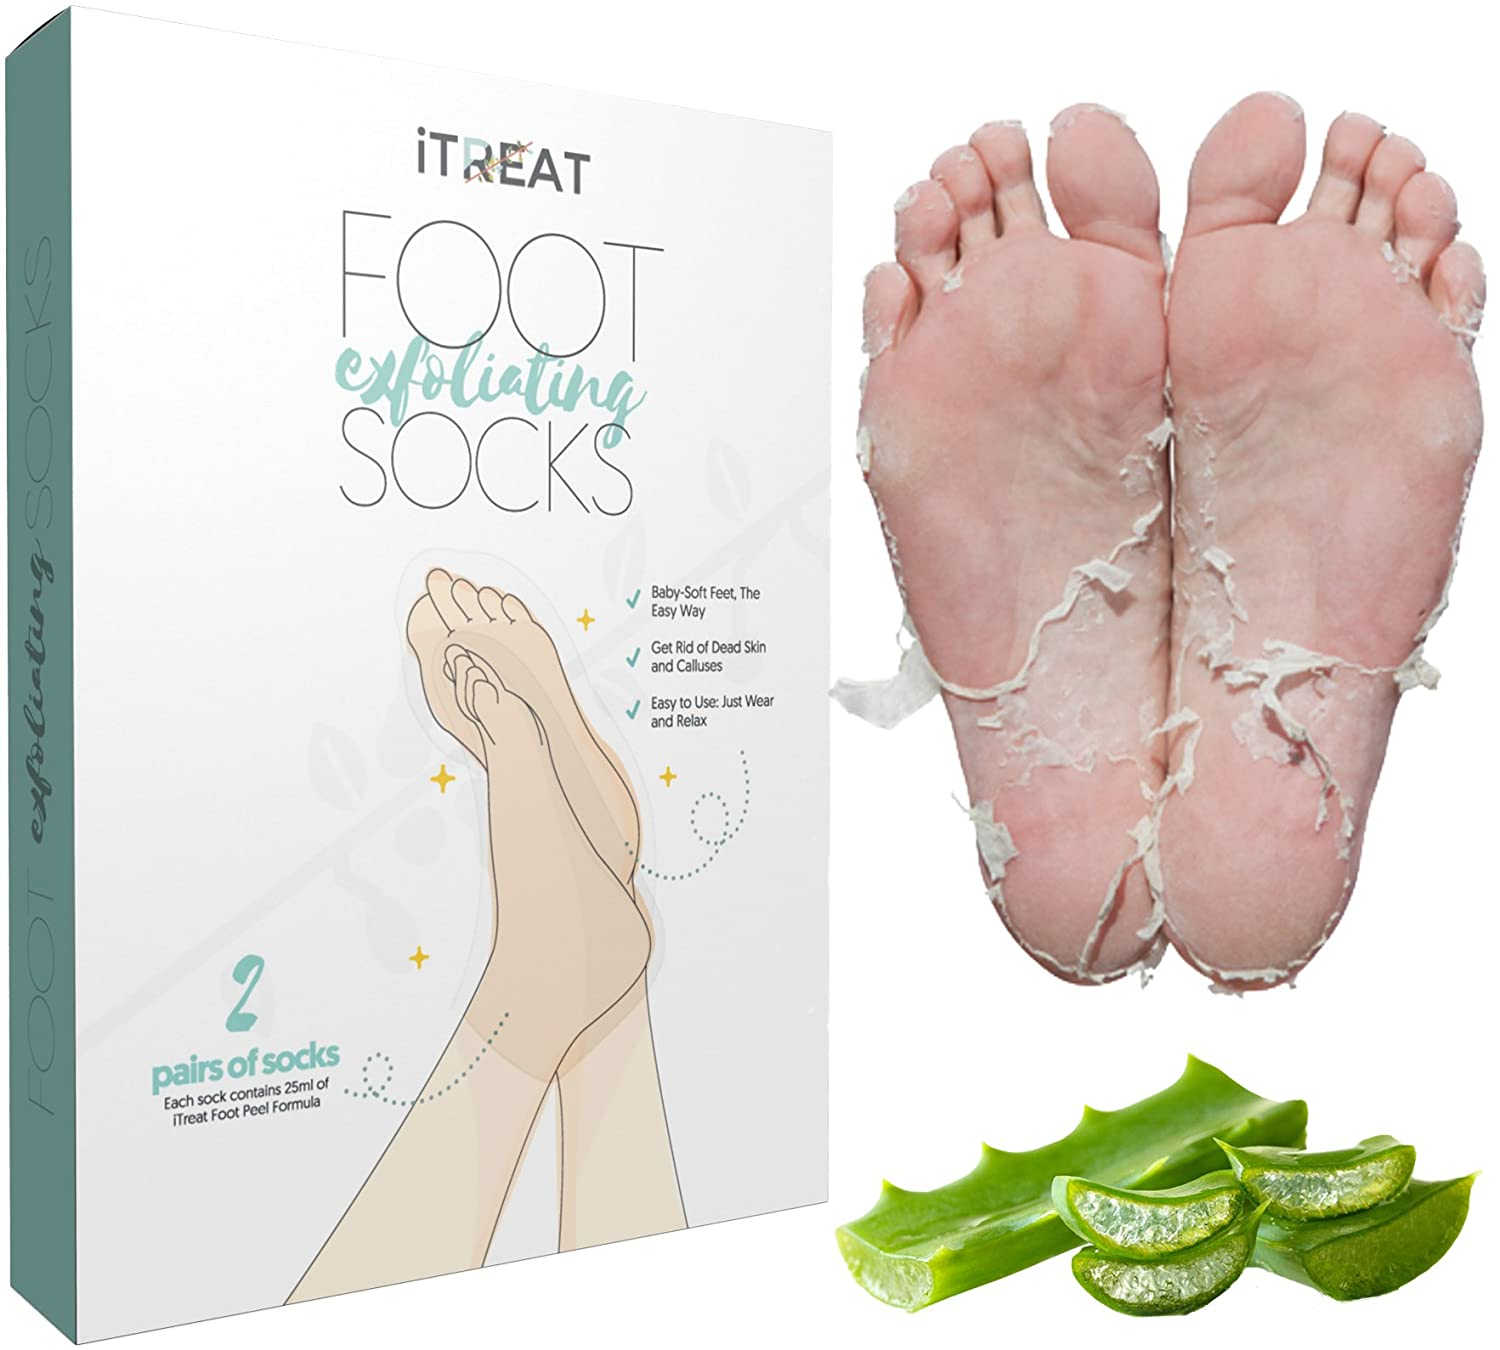 2 Pairs Foot Peel Mask, Remove Callus and Dead Skin Cells with Exfoliating Socks, get Baby Soft Feet in 7–10 days LTD